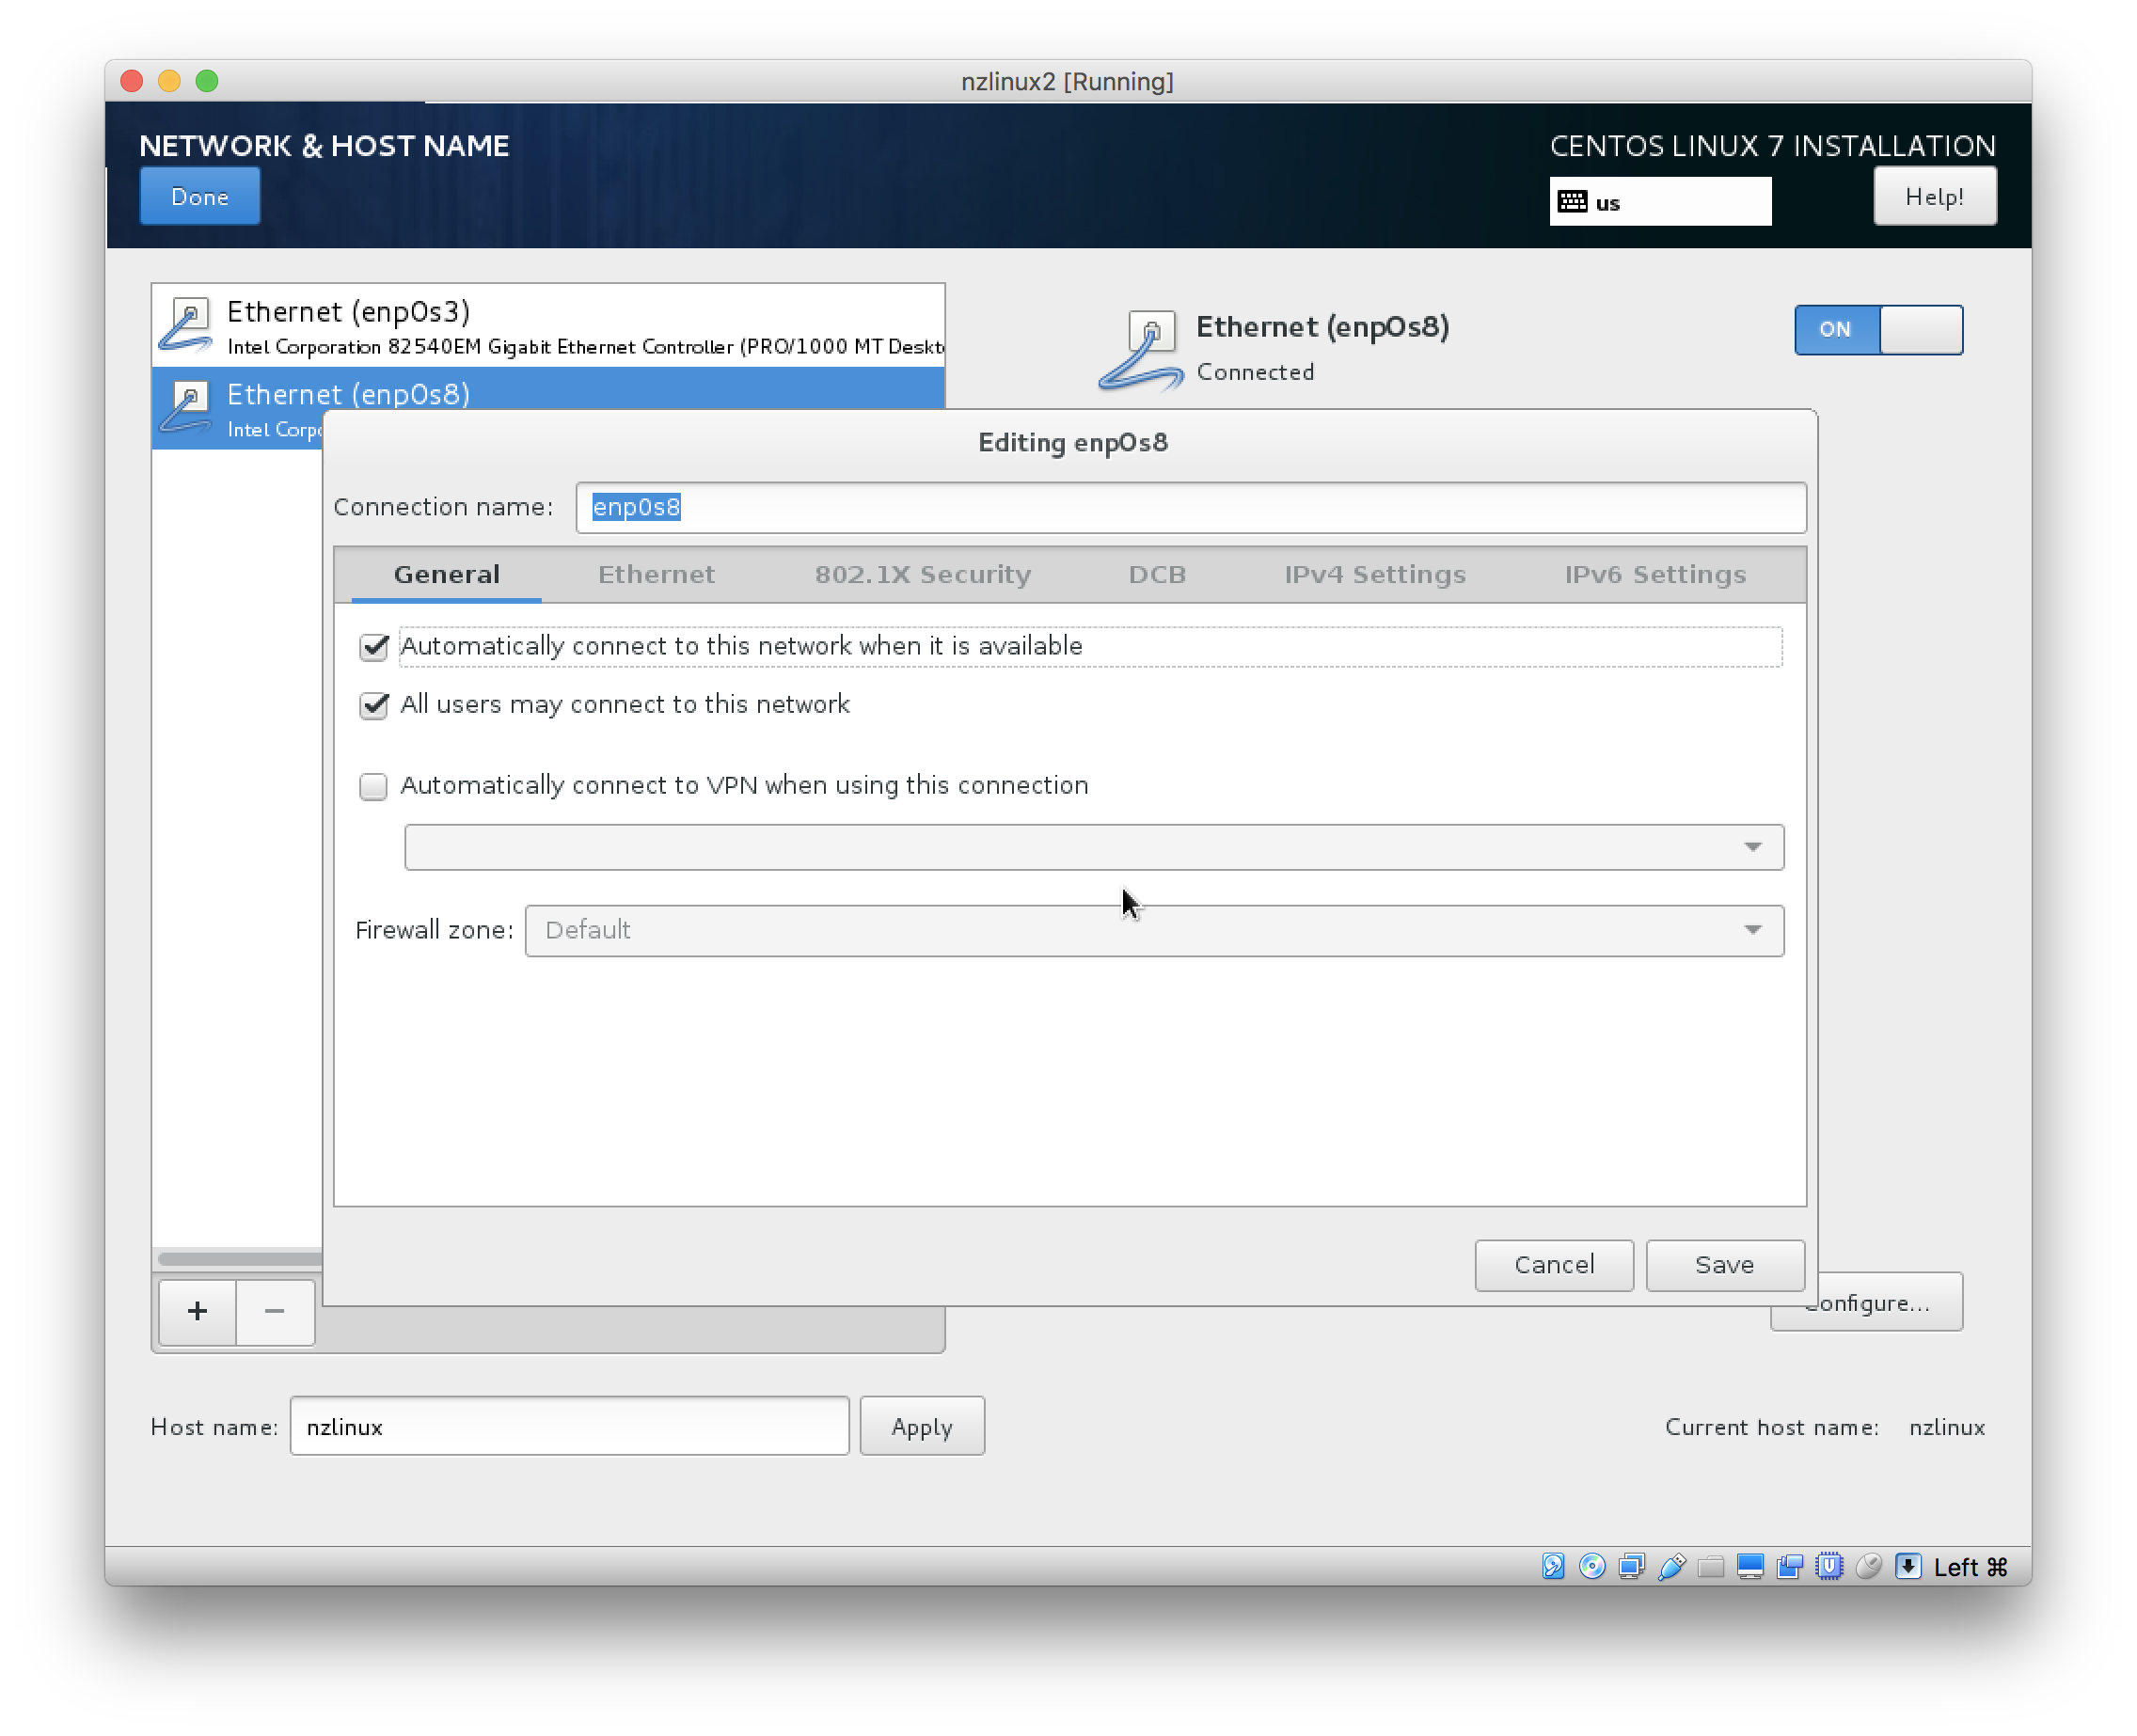 Create Linux VM running CentOS 7 3 minimal with pyodbc and Netezza